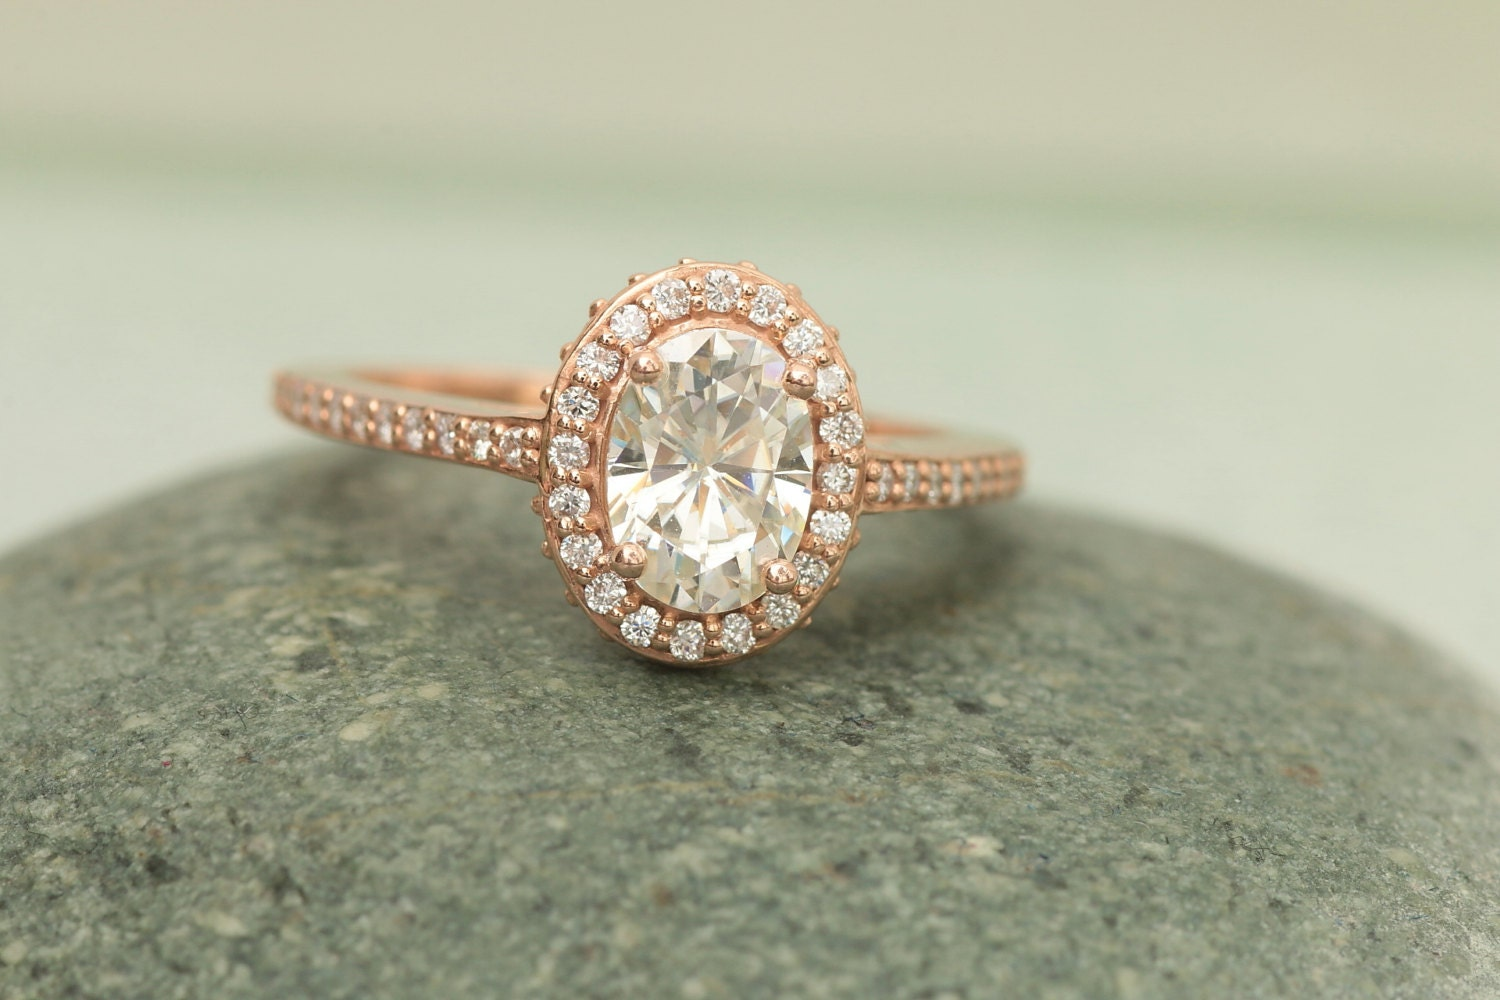 SALE Moissanite Rose Gold Diamond Halo Engagement Ring